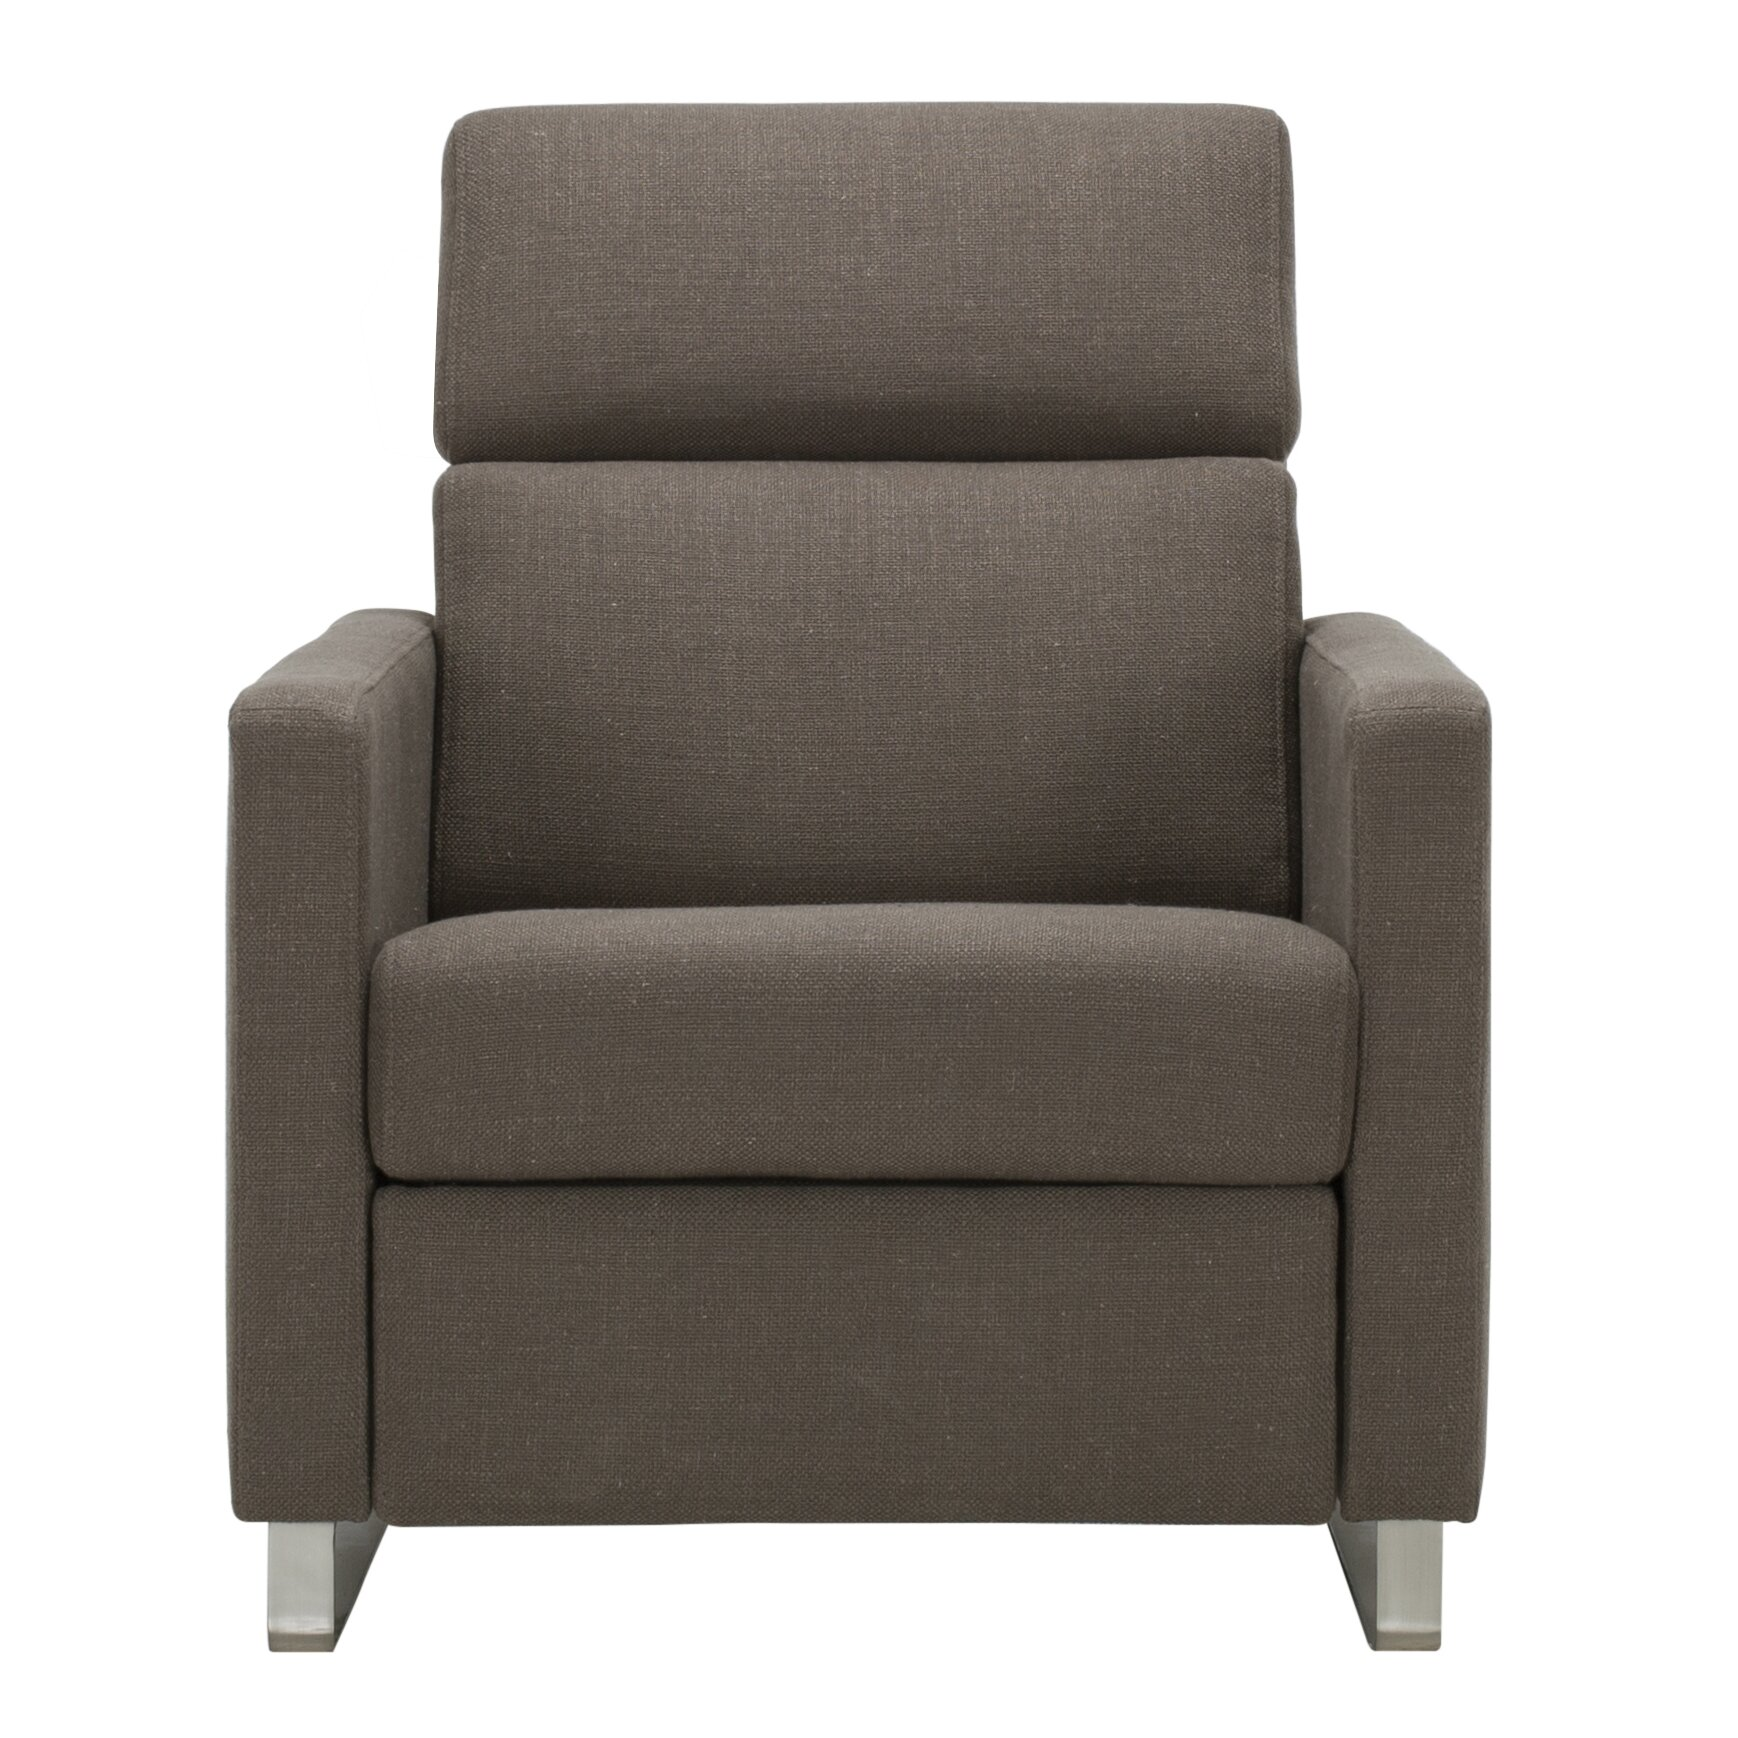 Small Recliners For Bedroom Modern Recliners Find The Perfect Recliner Chair Allmodern